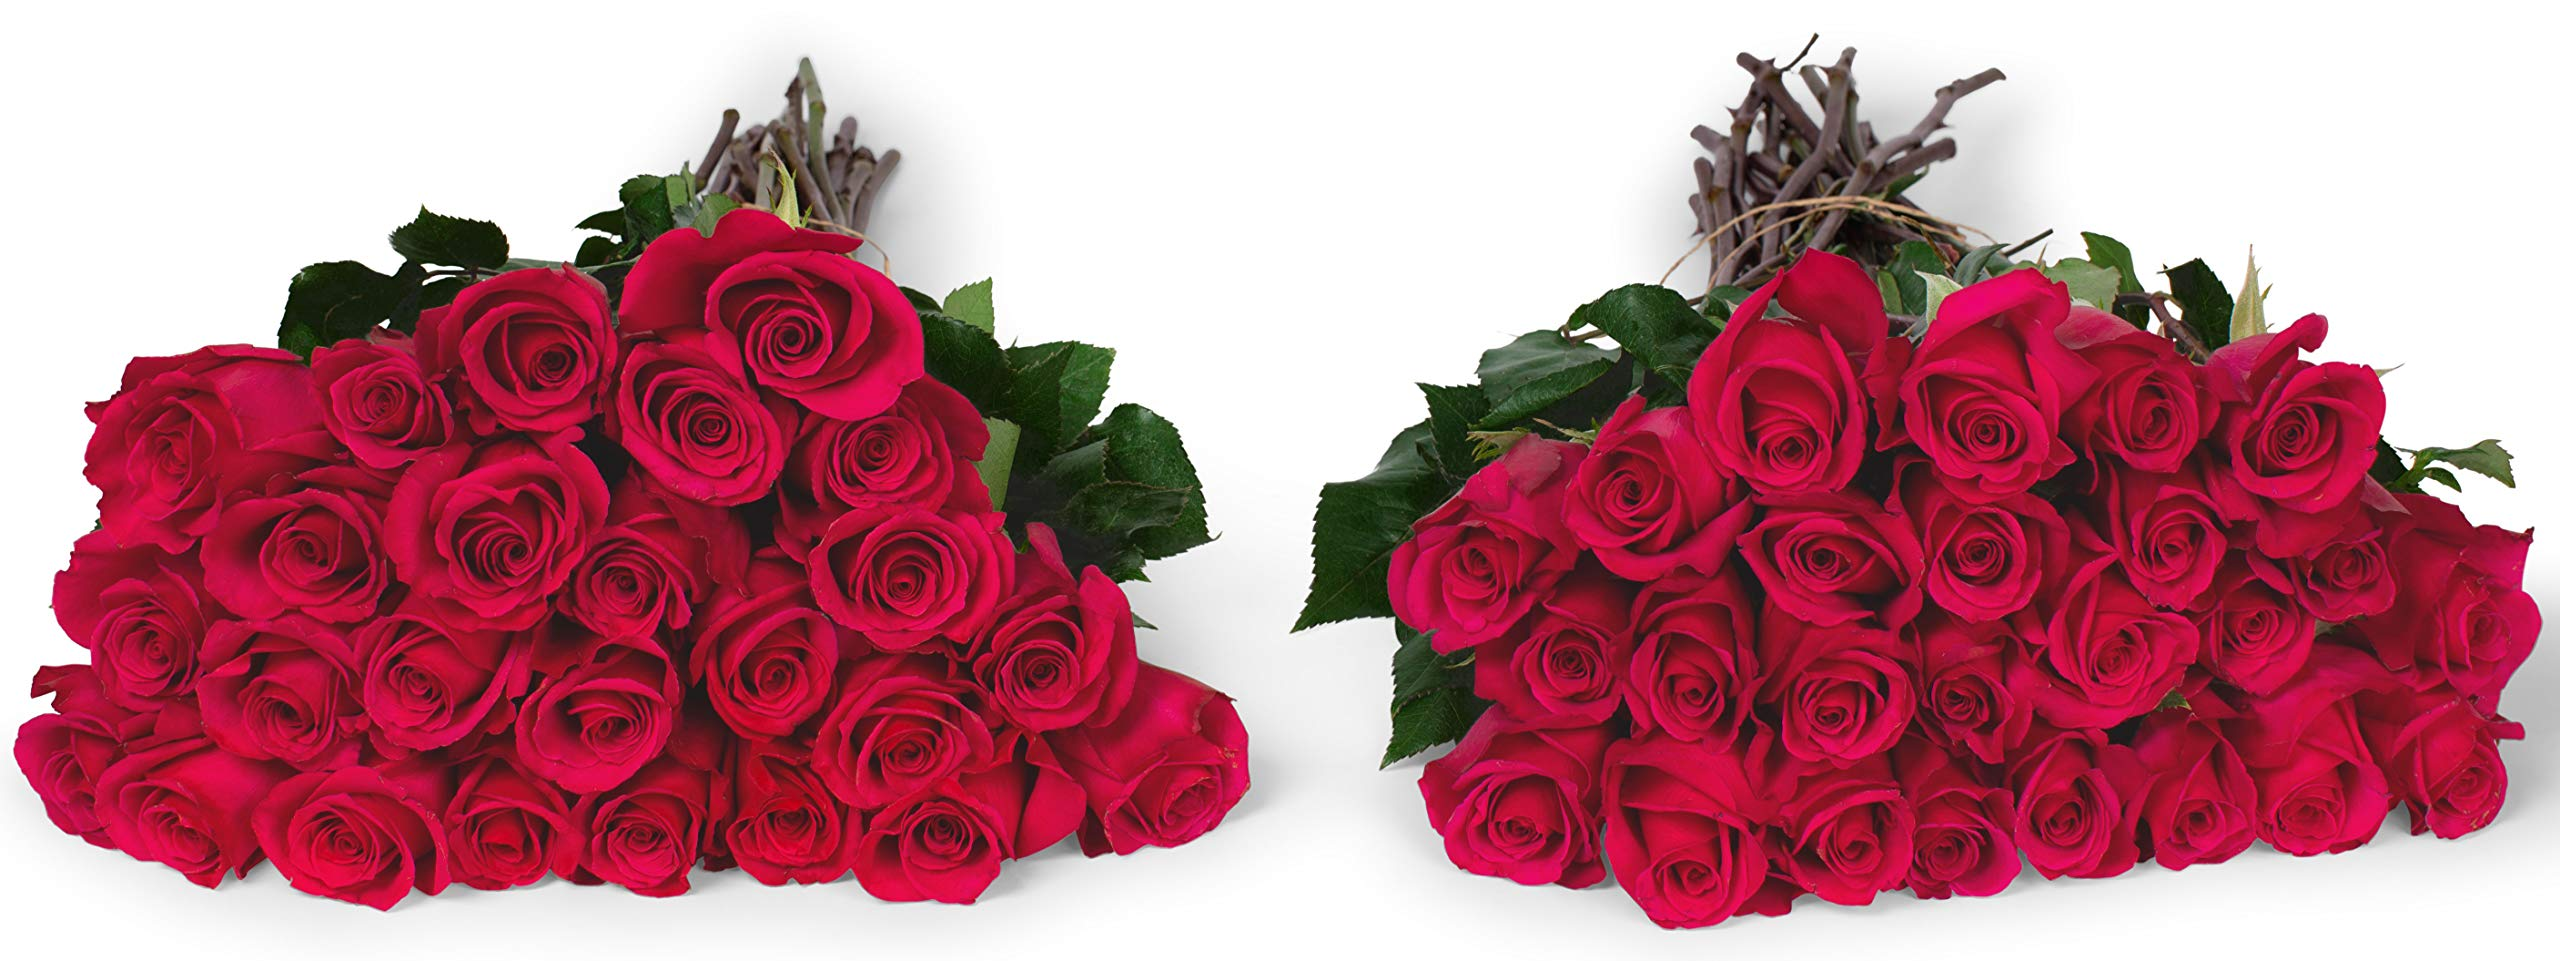 Benchmark Bouquets 50 Hot Pink Roses Farm Direct (Fresh Cut Flowers) by Benchmark Bouquets